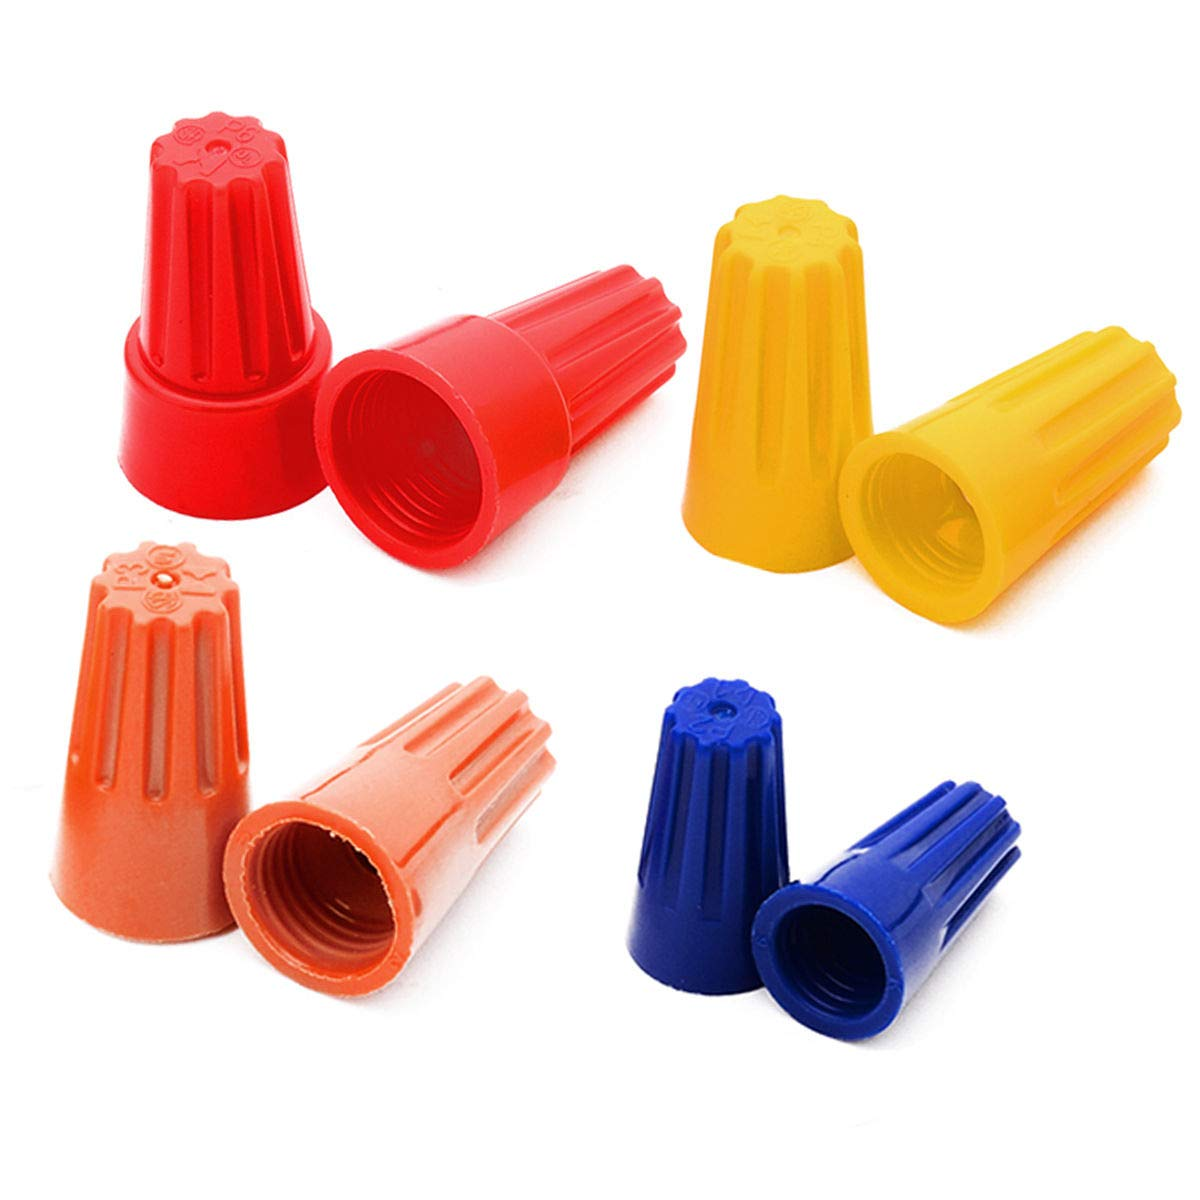 Plastic Twist on Cable Nuts Connector P2 and Different Colors Thimble Wire